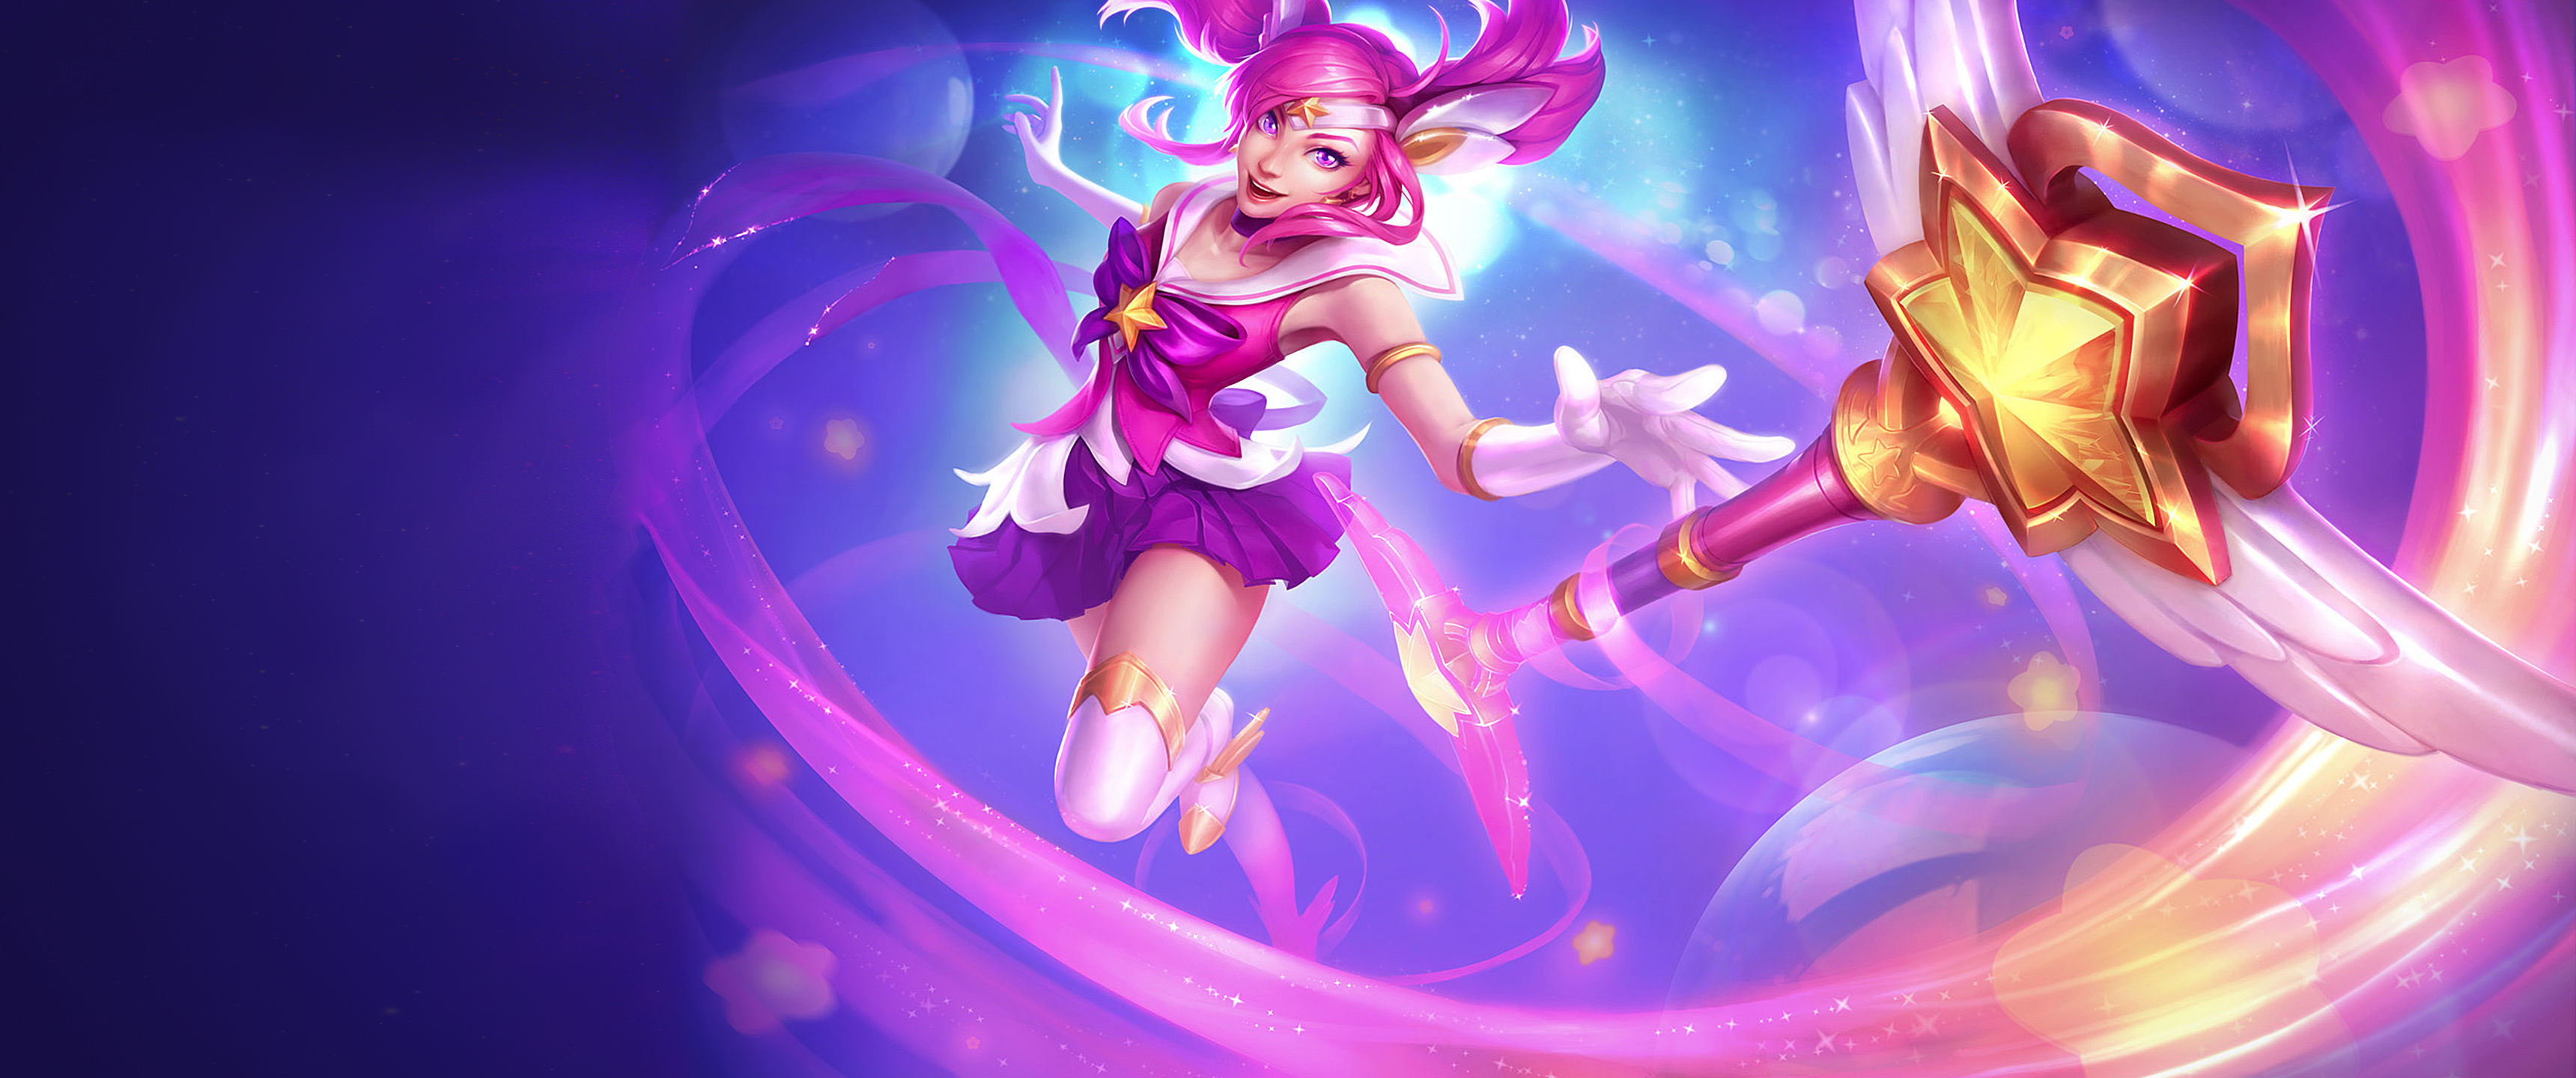 86 Lux League Of Legends HD Wallpapers Background Images 3440x1440